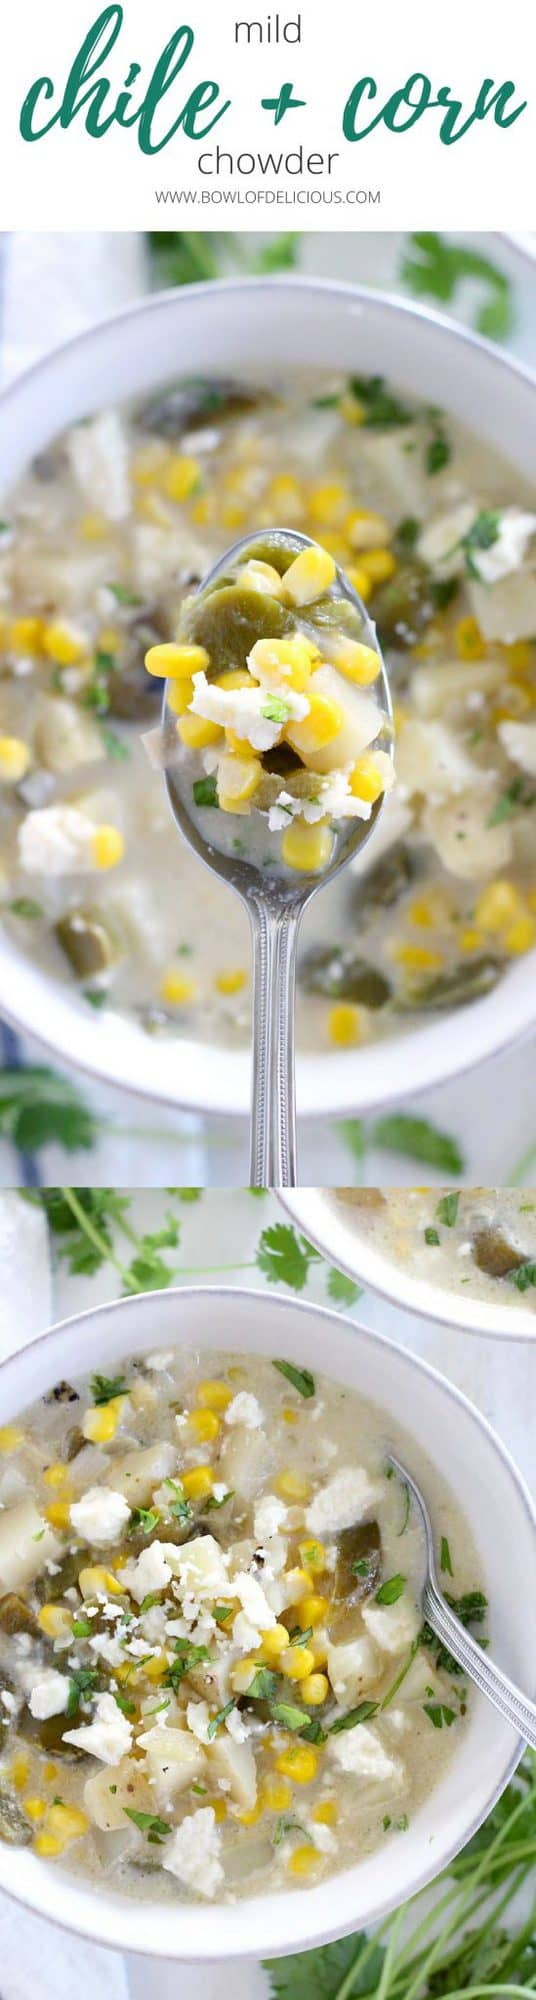 This mild green chile and corn chowder is thick and creamy, packed with sweet corn and mild fire-roasted green chiles. It's a gluten-free, vegetarian, hearty soup perfect for the end of summer! #cornchowder #soup #vegetarian #glutenfree